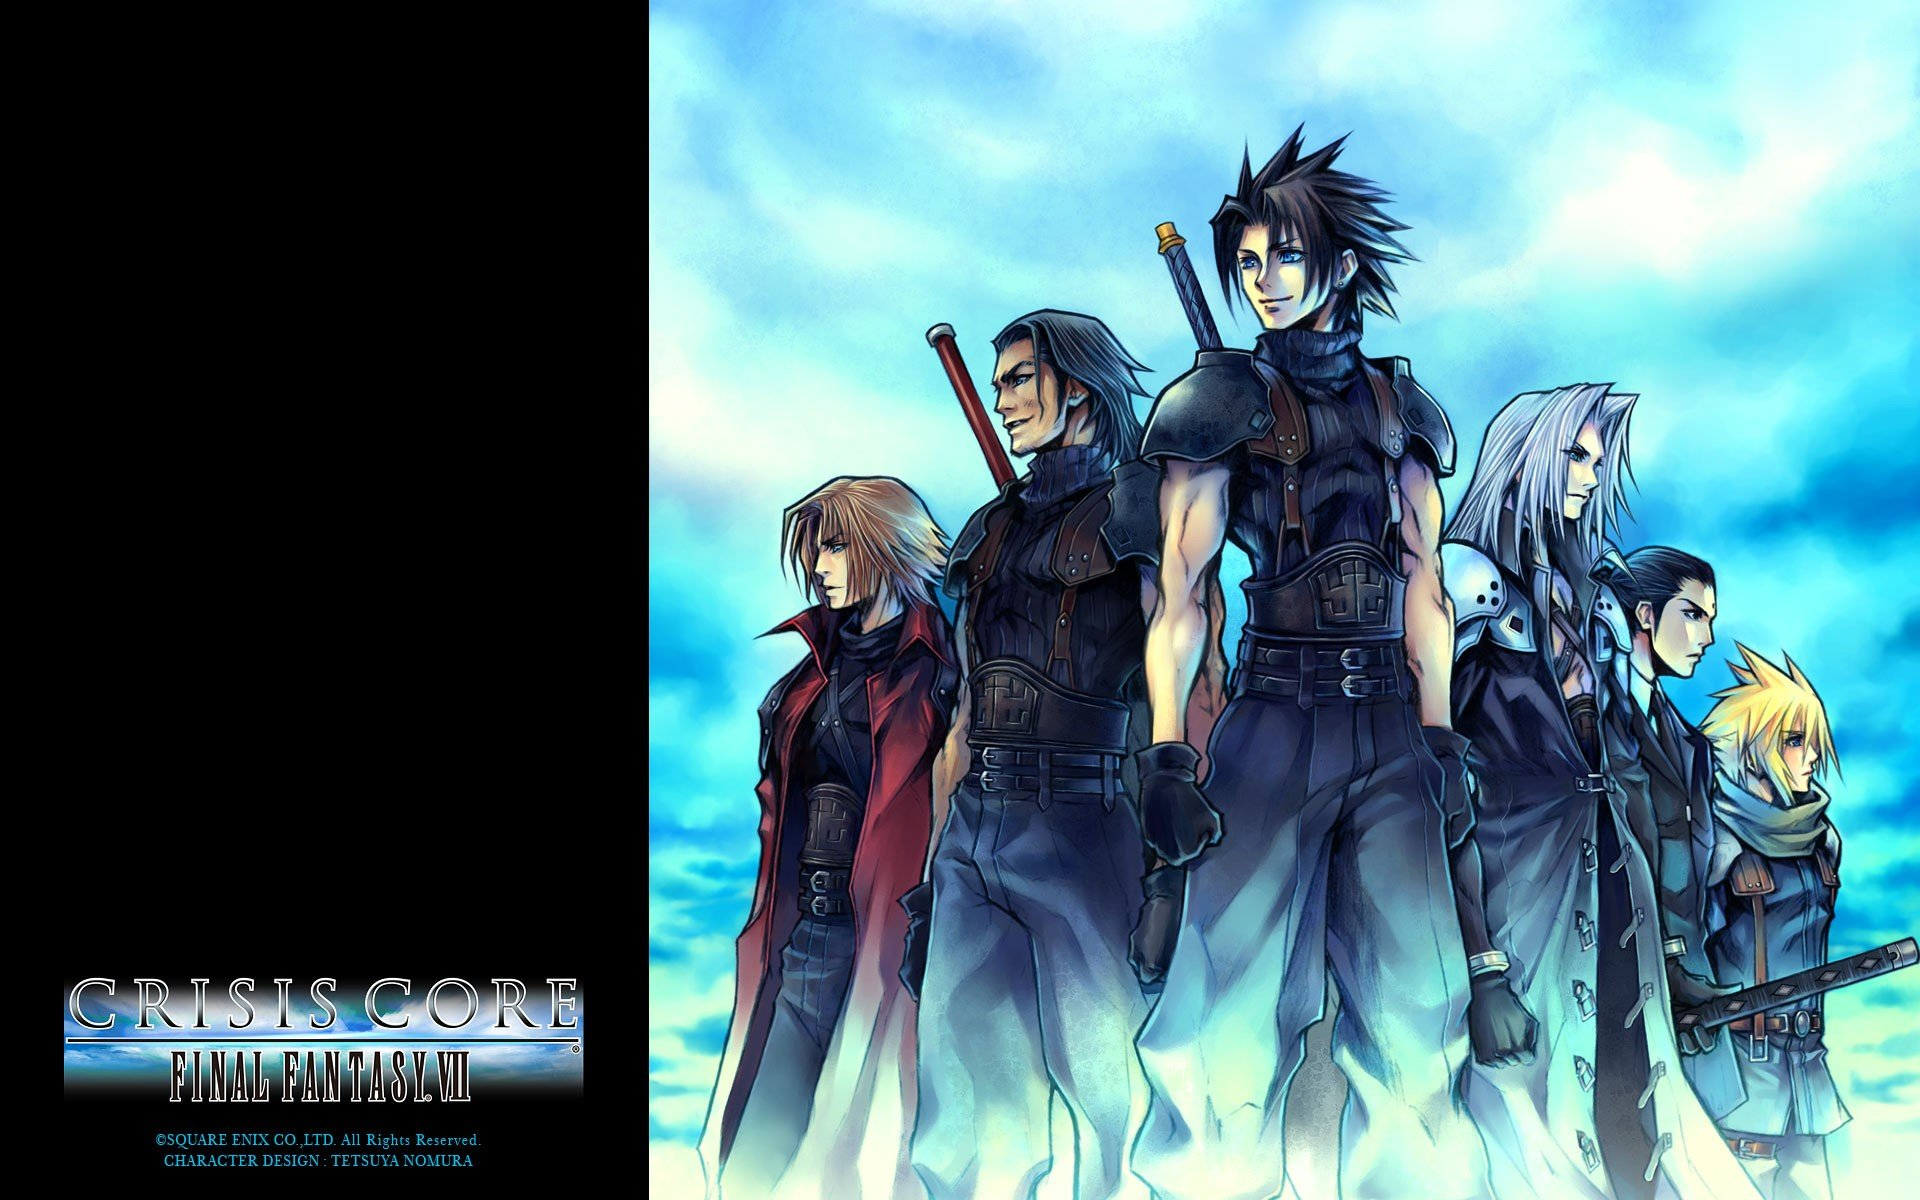 High Resolution Final Fantasy VII FF7 Hd 1920x1200 Wallpaper ID84242 For Computer